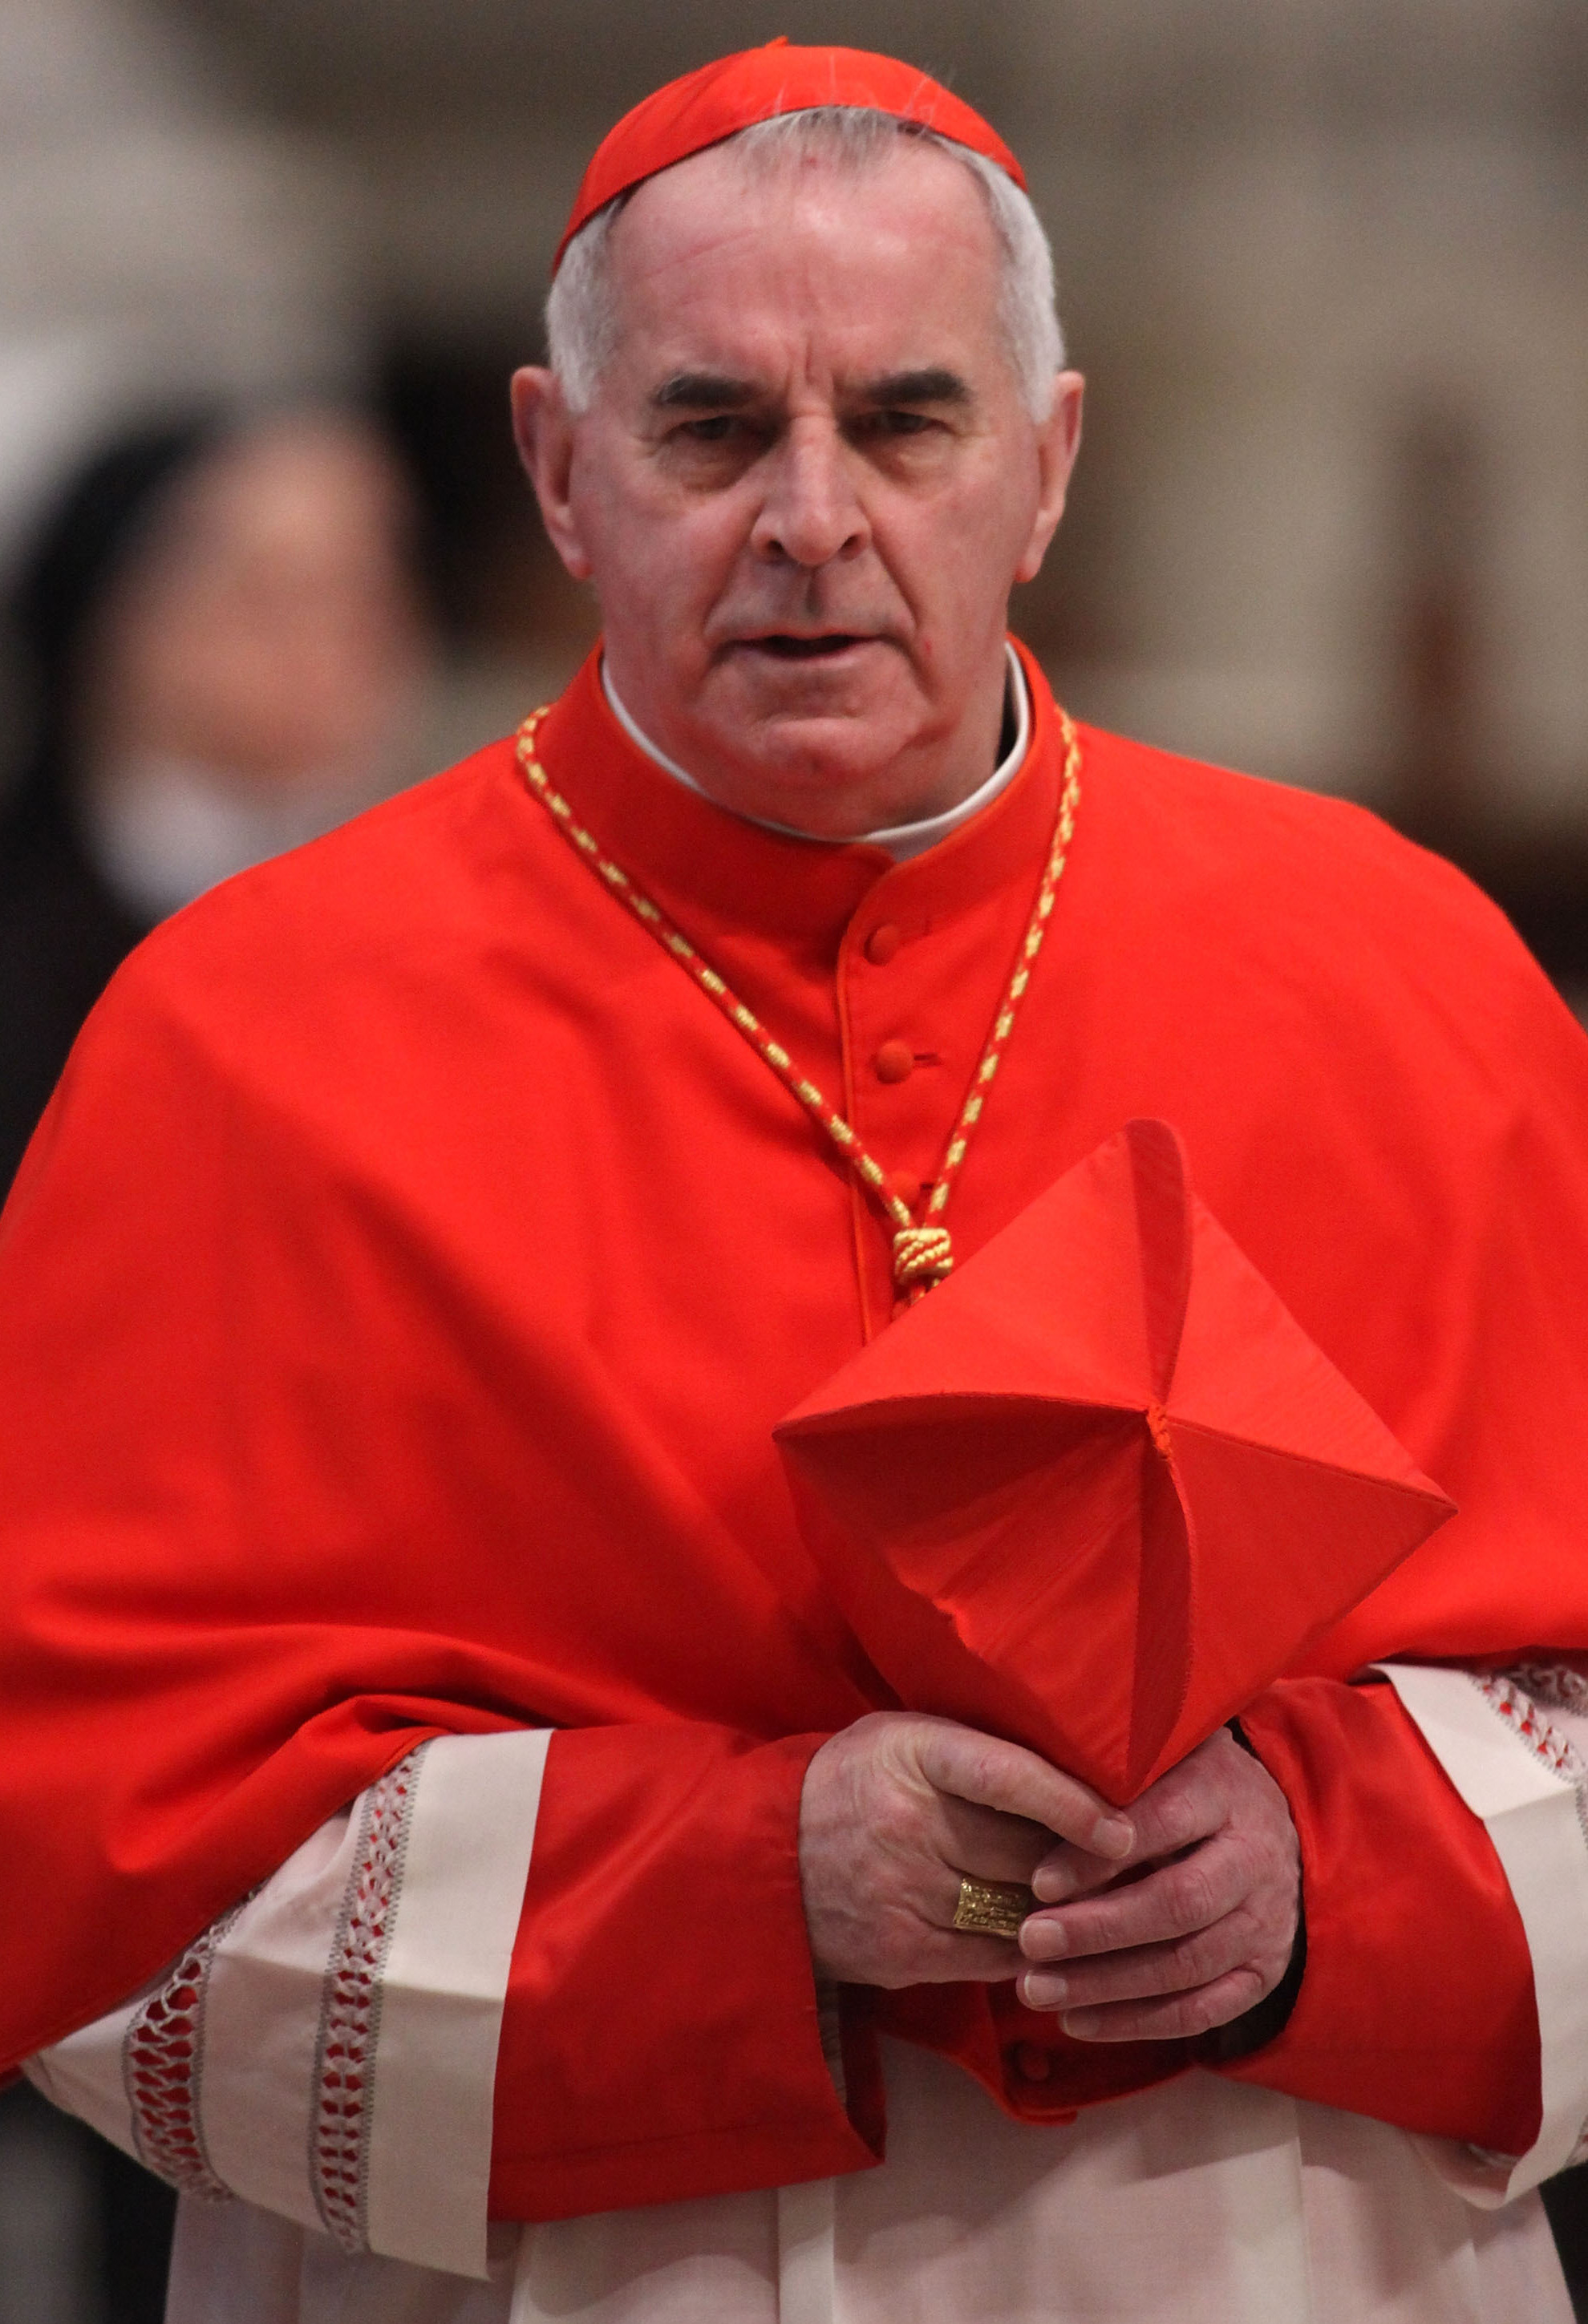 Pope Moves Up Start Of Conclave; British Cardinal Resigns ...